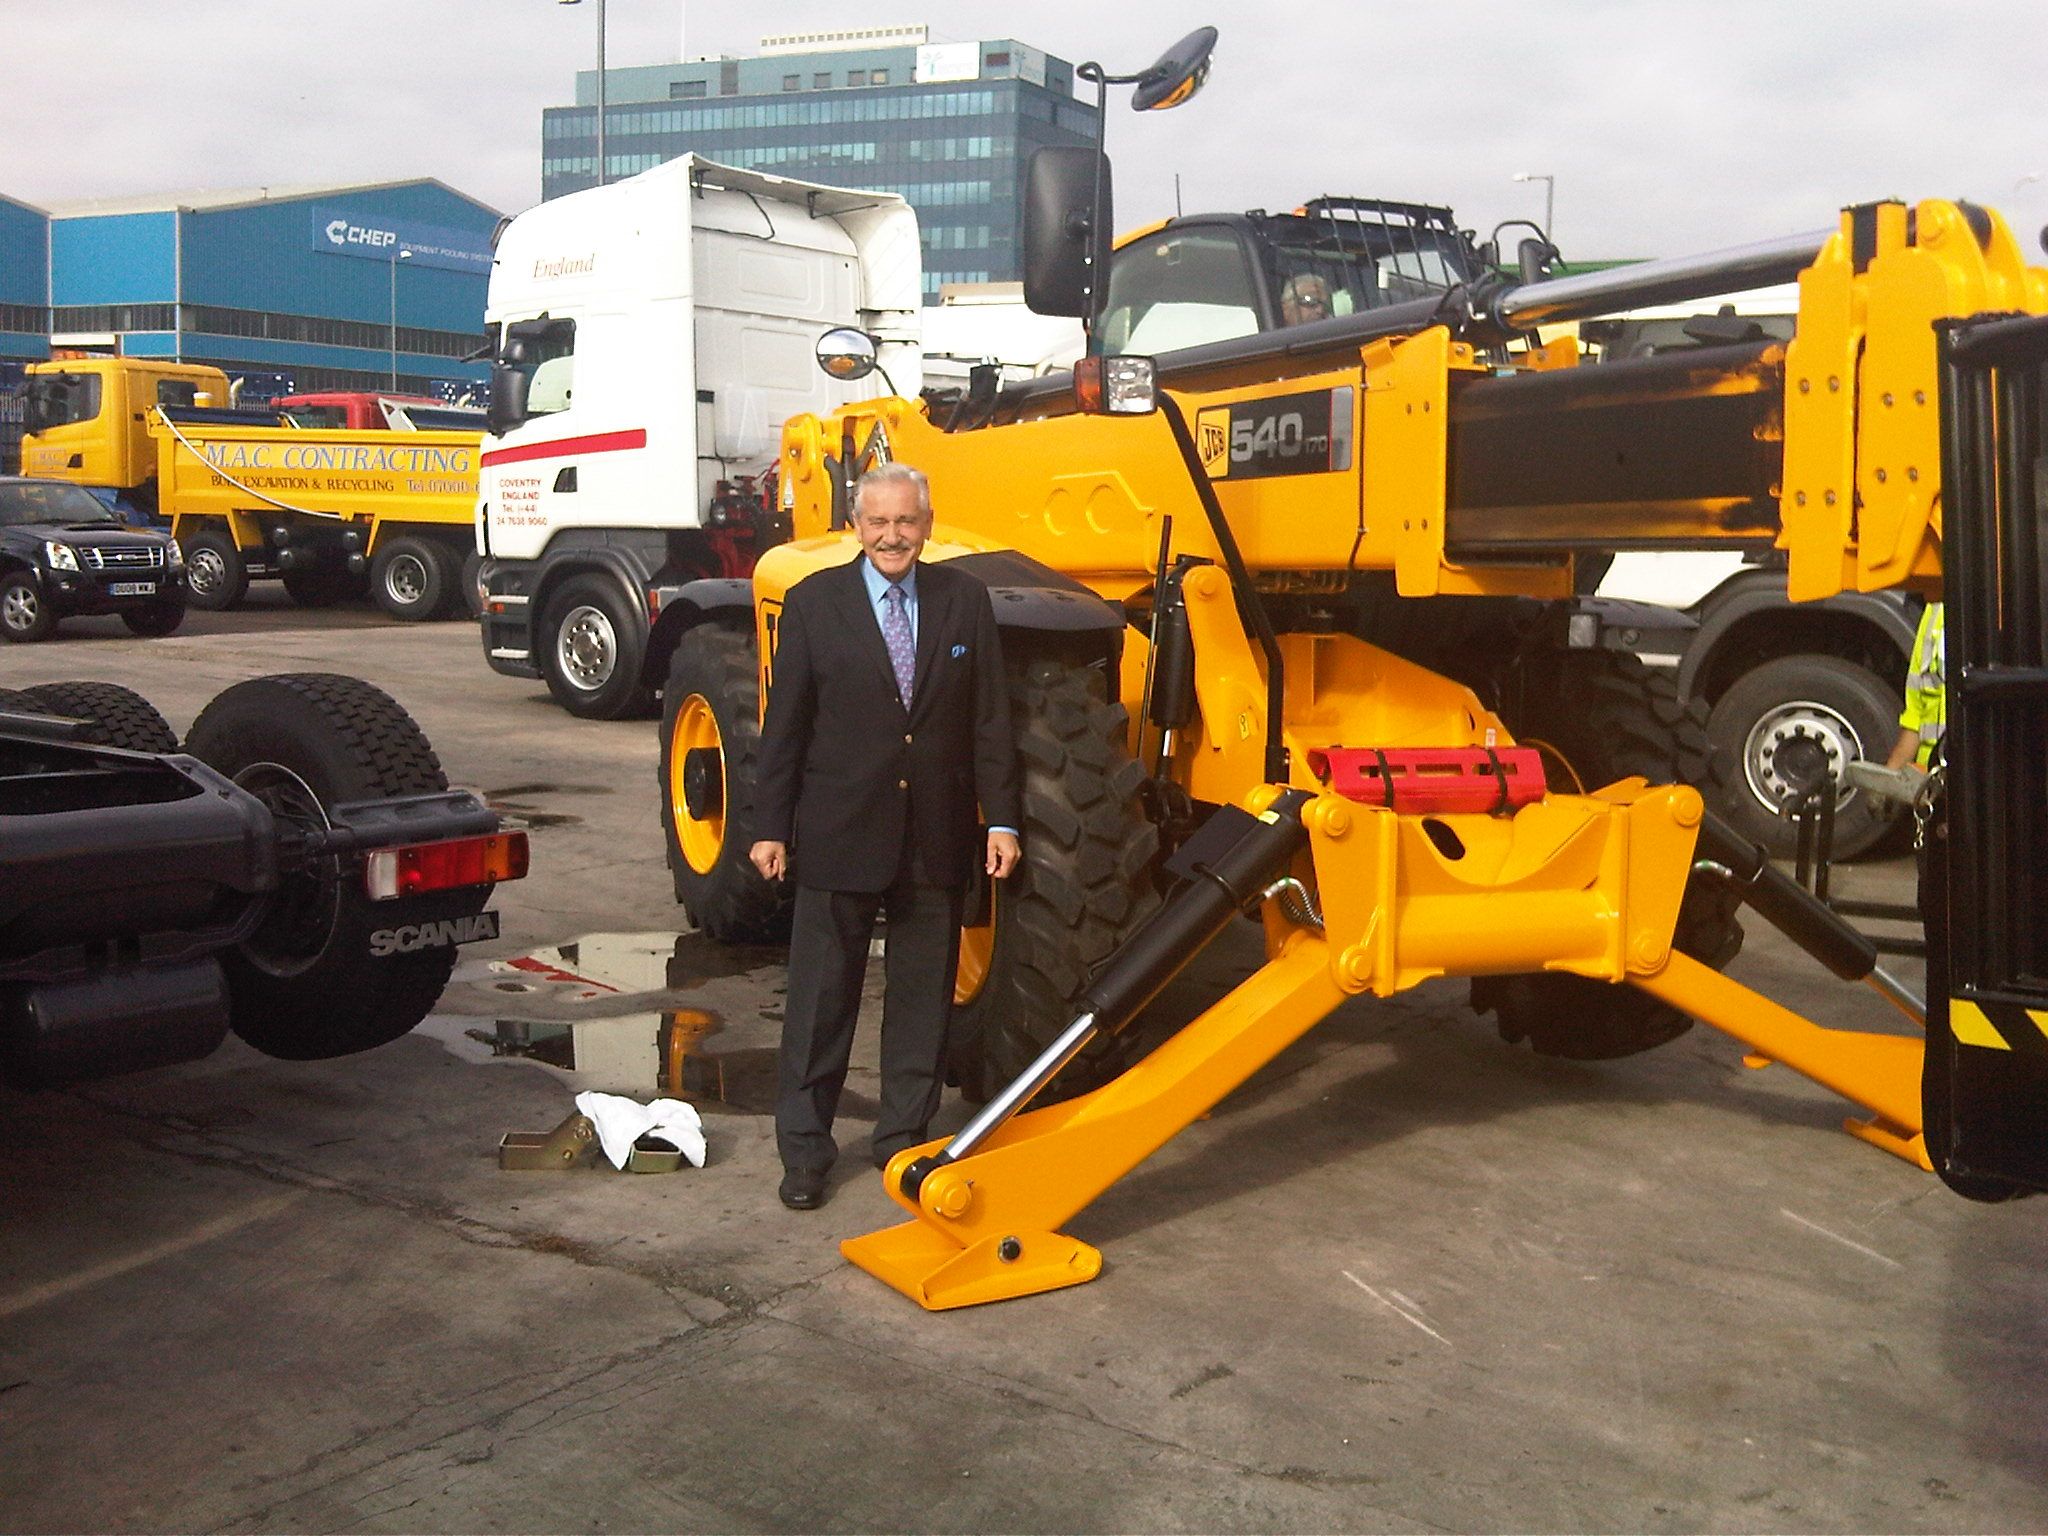 Chris Kelly introduces new JCB equipment for Keltruck Scania Vehicle Recycling